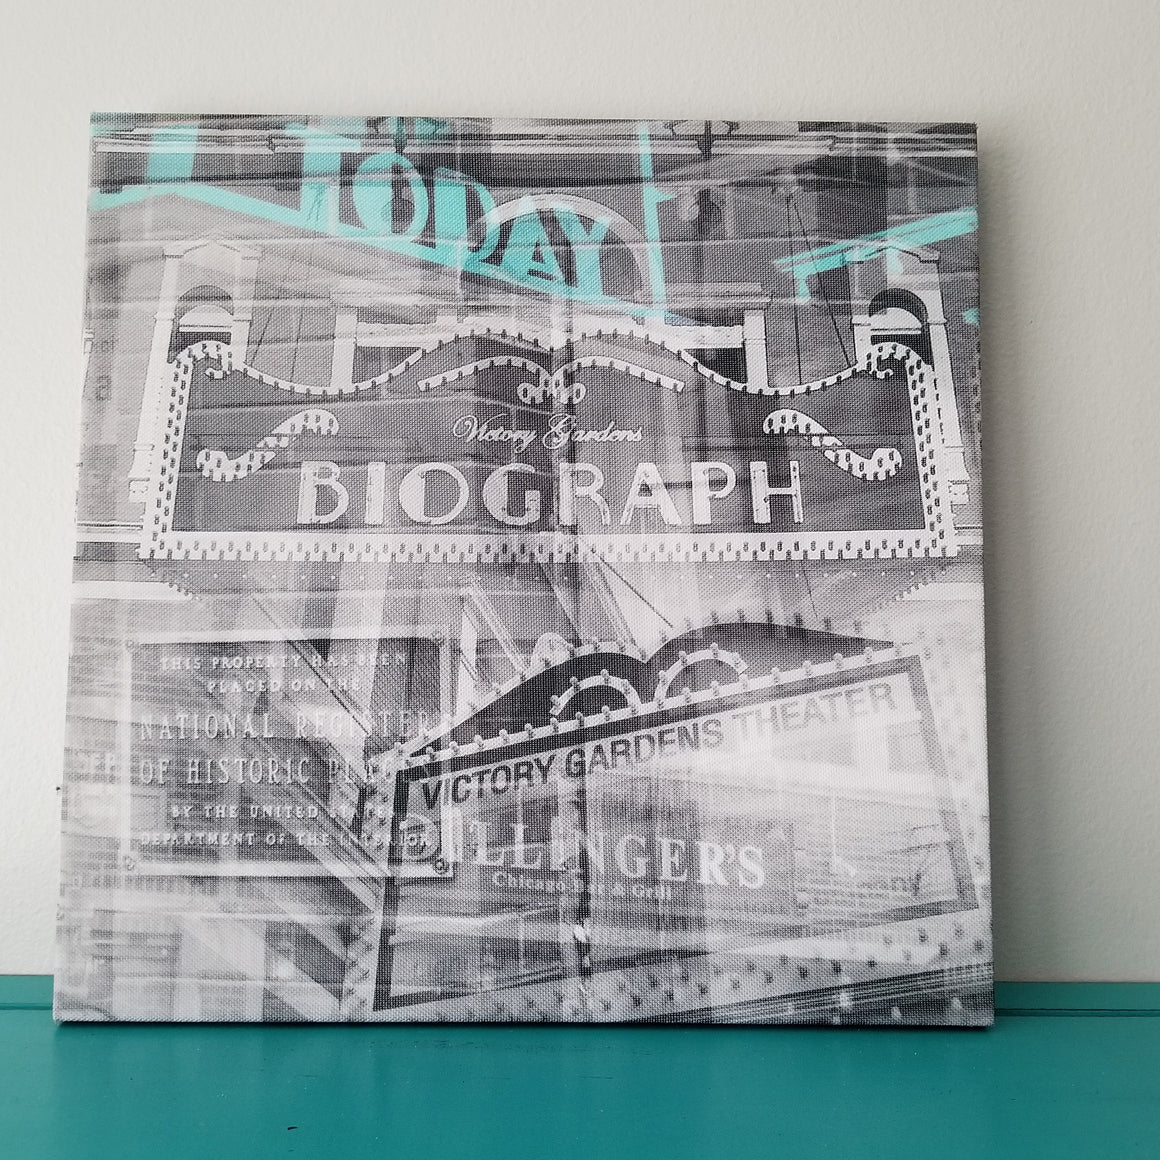 "Biograph Theater - Chicago 13"" Canvas Wall Art - Photo Collage"